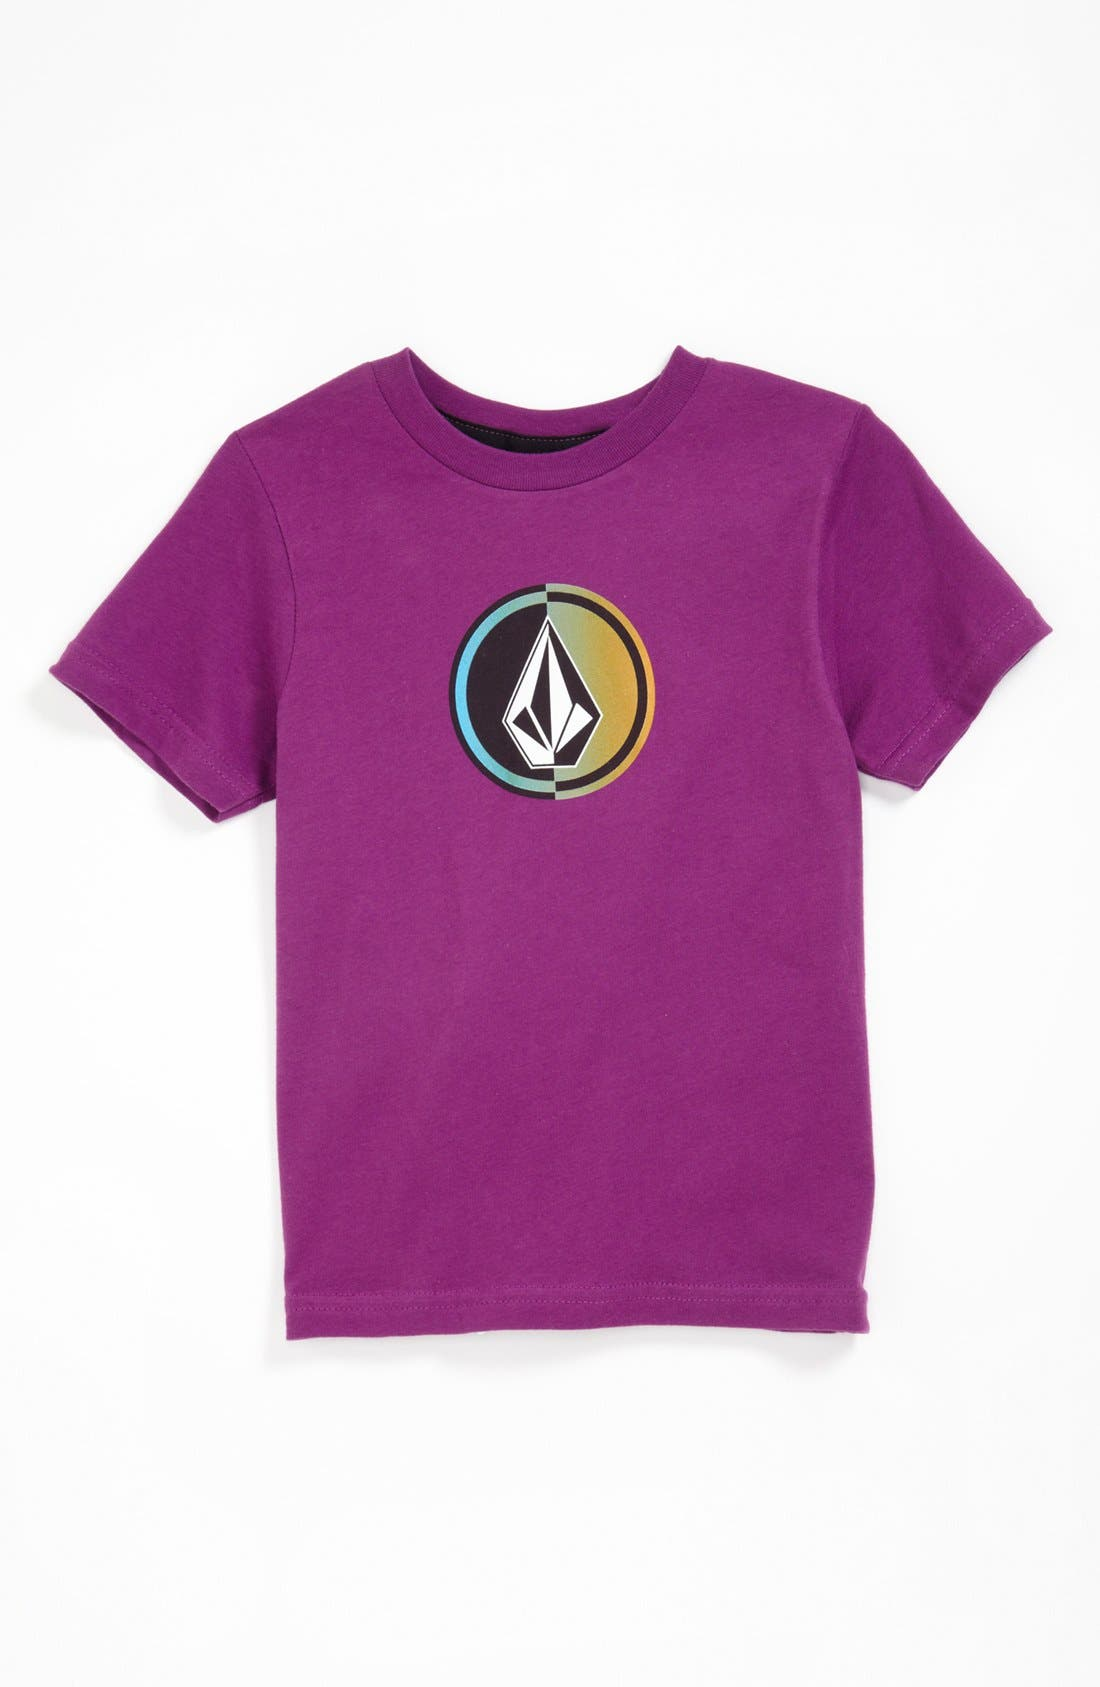 Alternate Image 1 Selected - Volcom 'Circle Stone' T-Shirt (Big Boys)